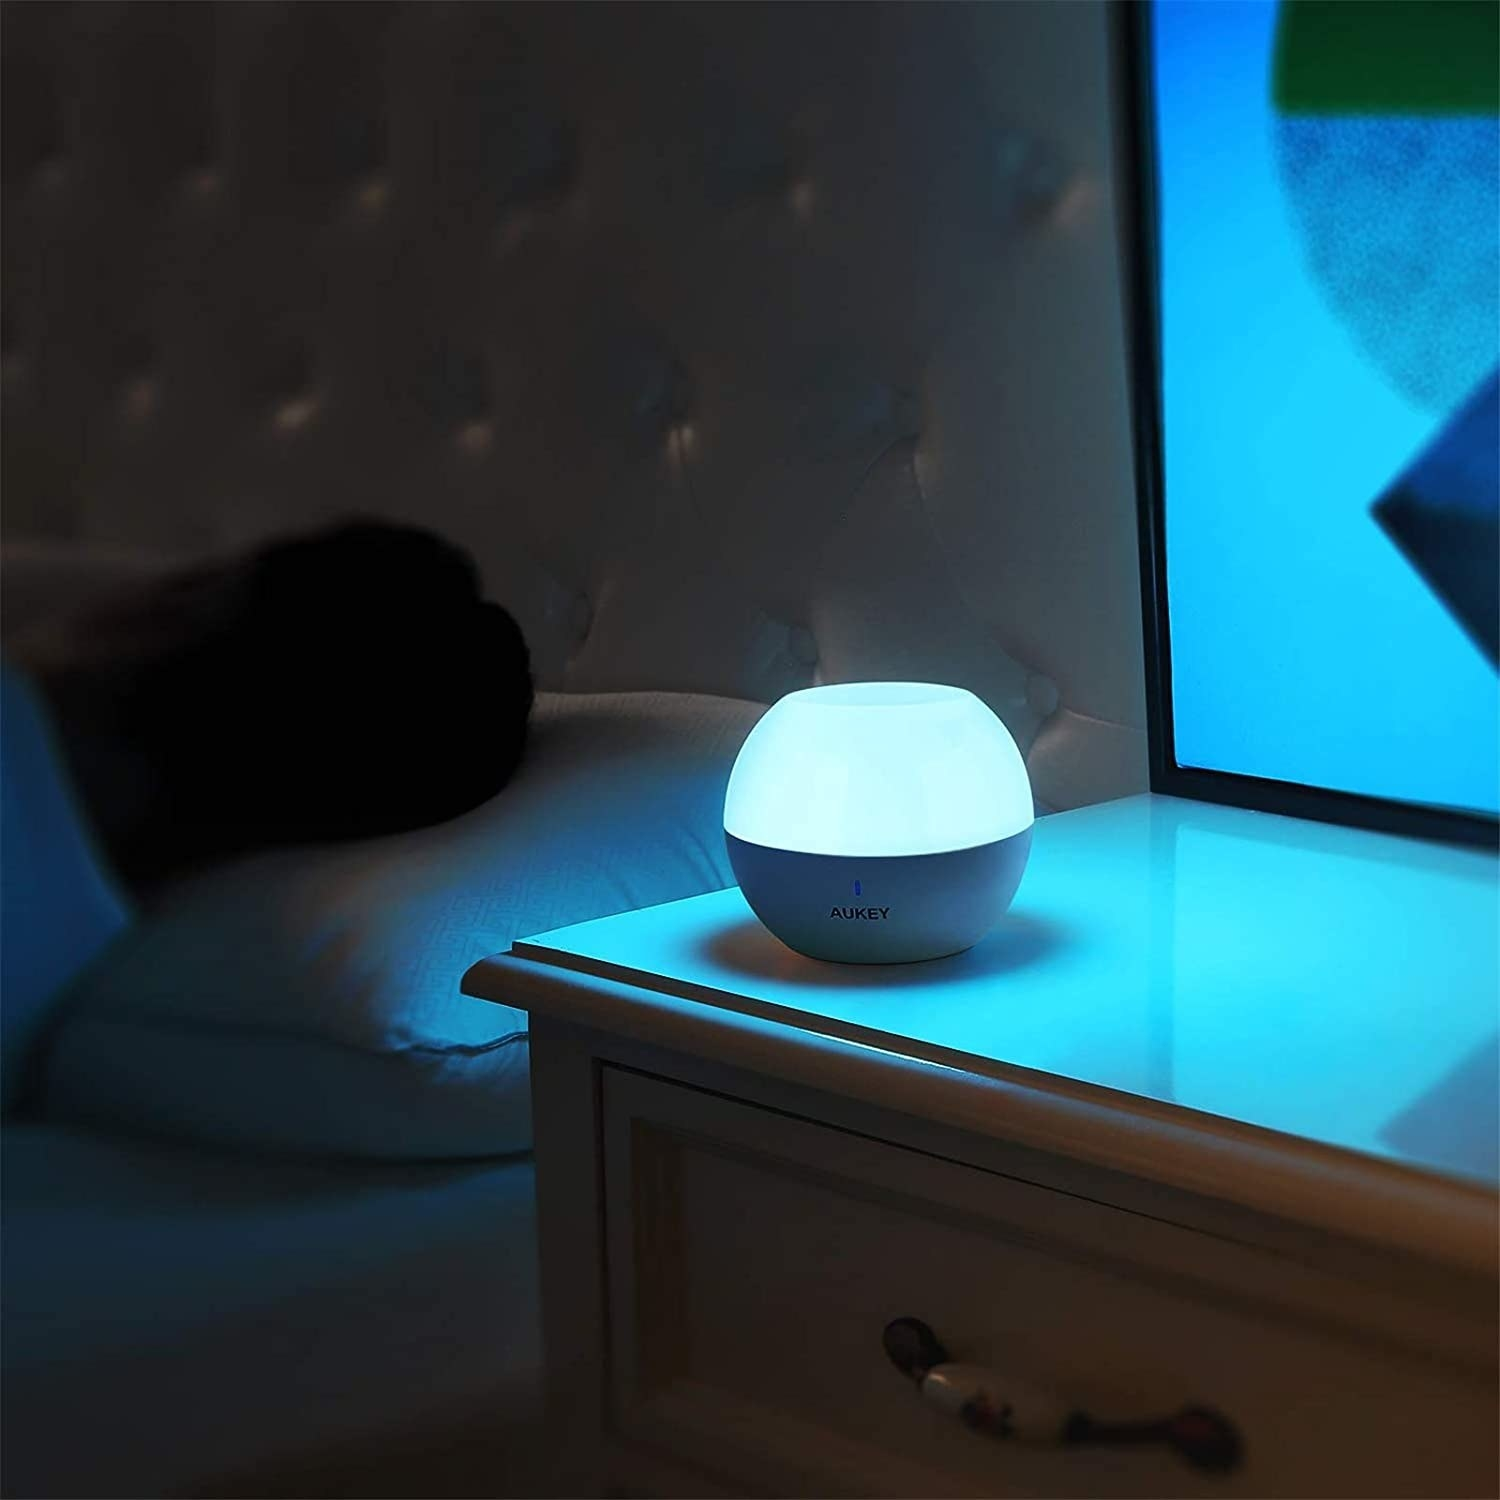 A person sleeping next to the night light